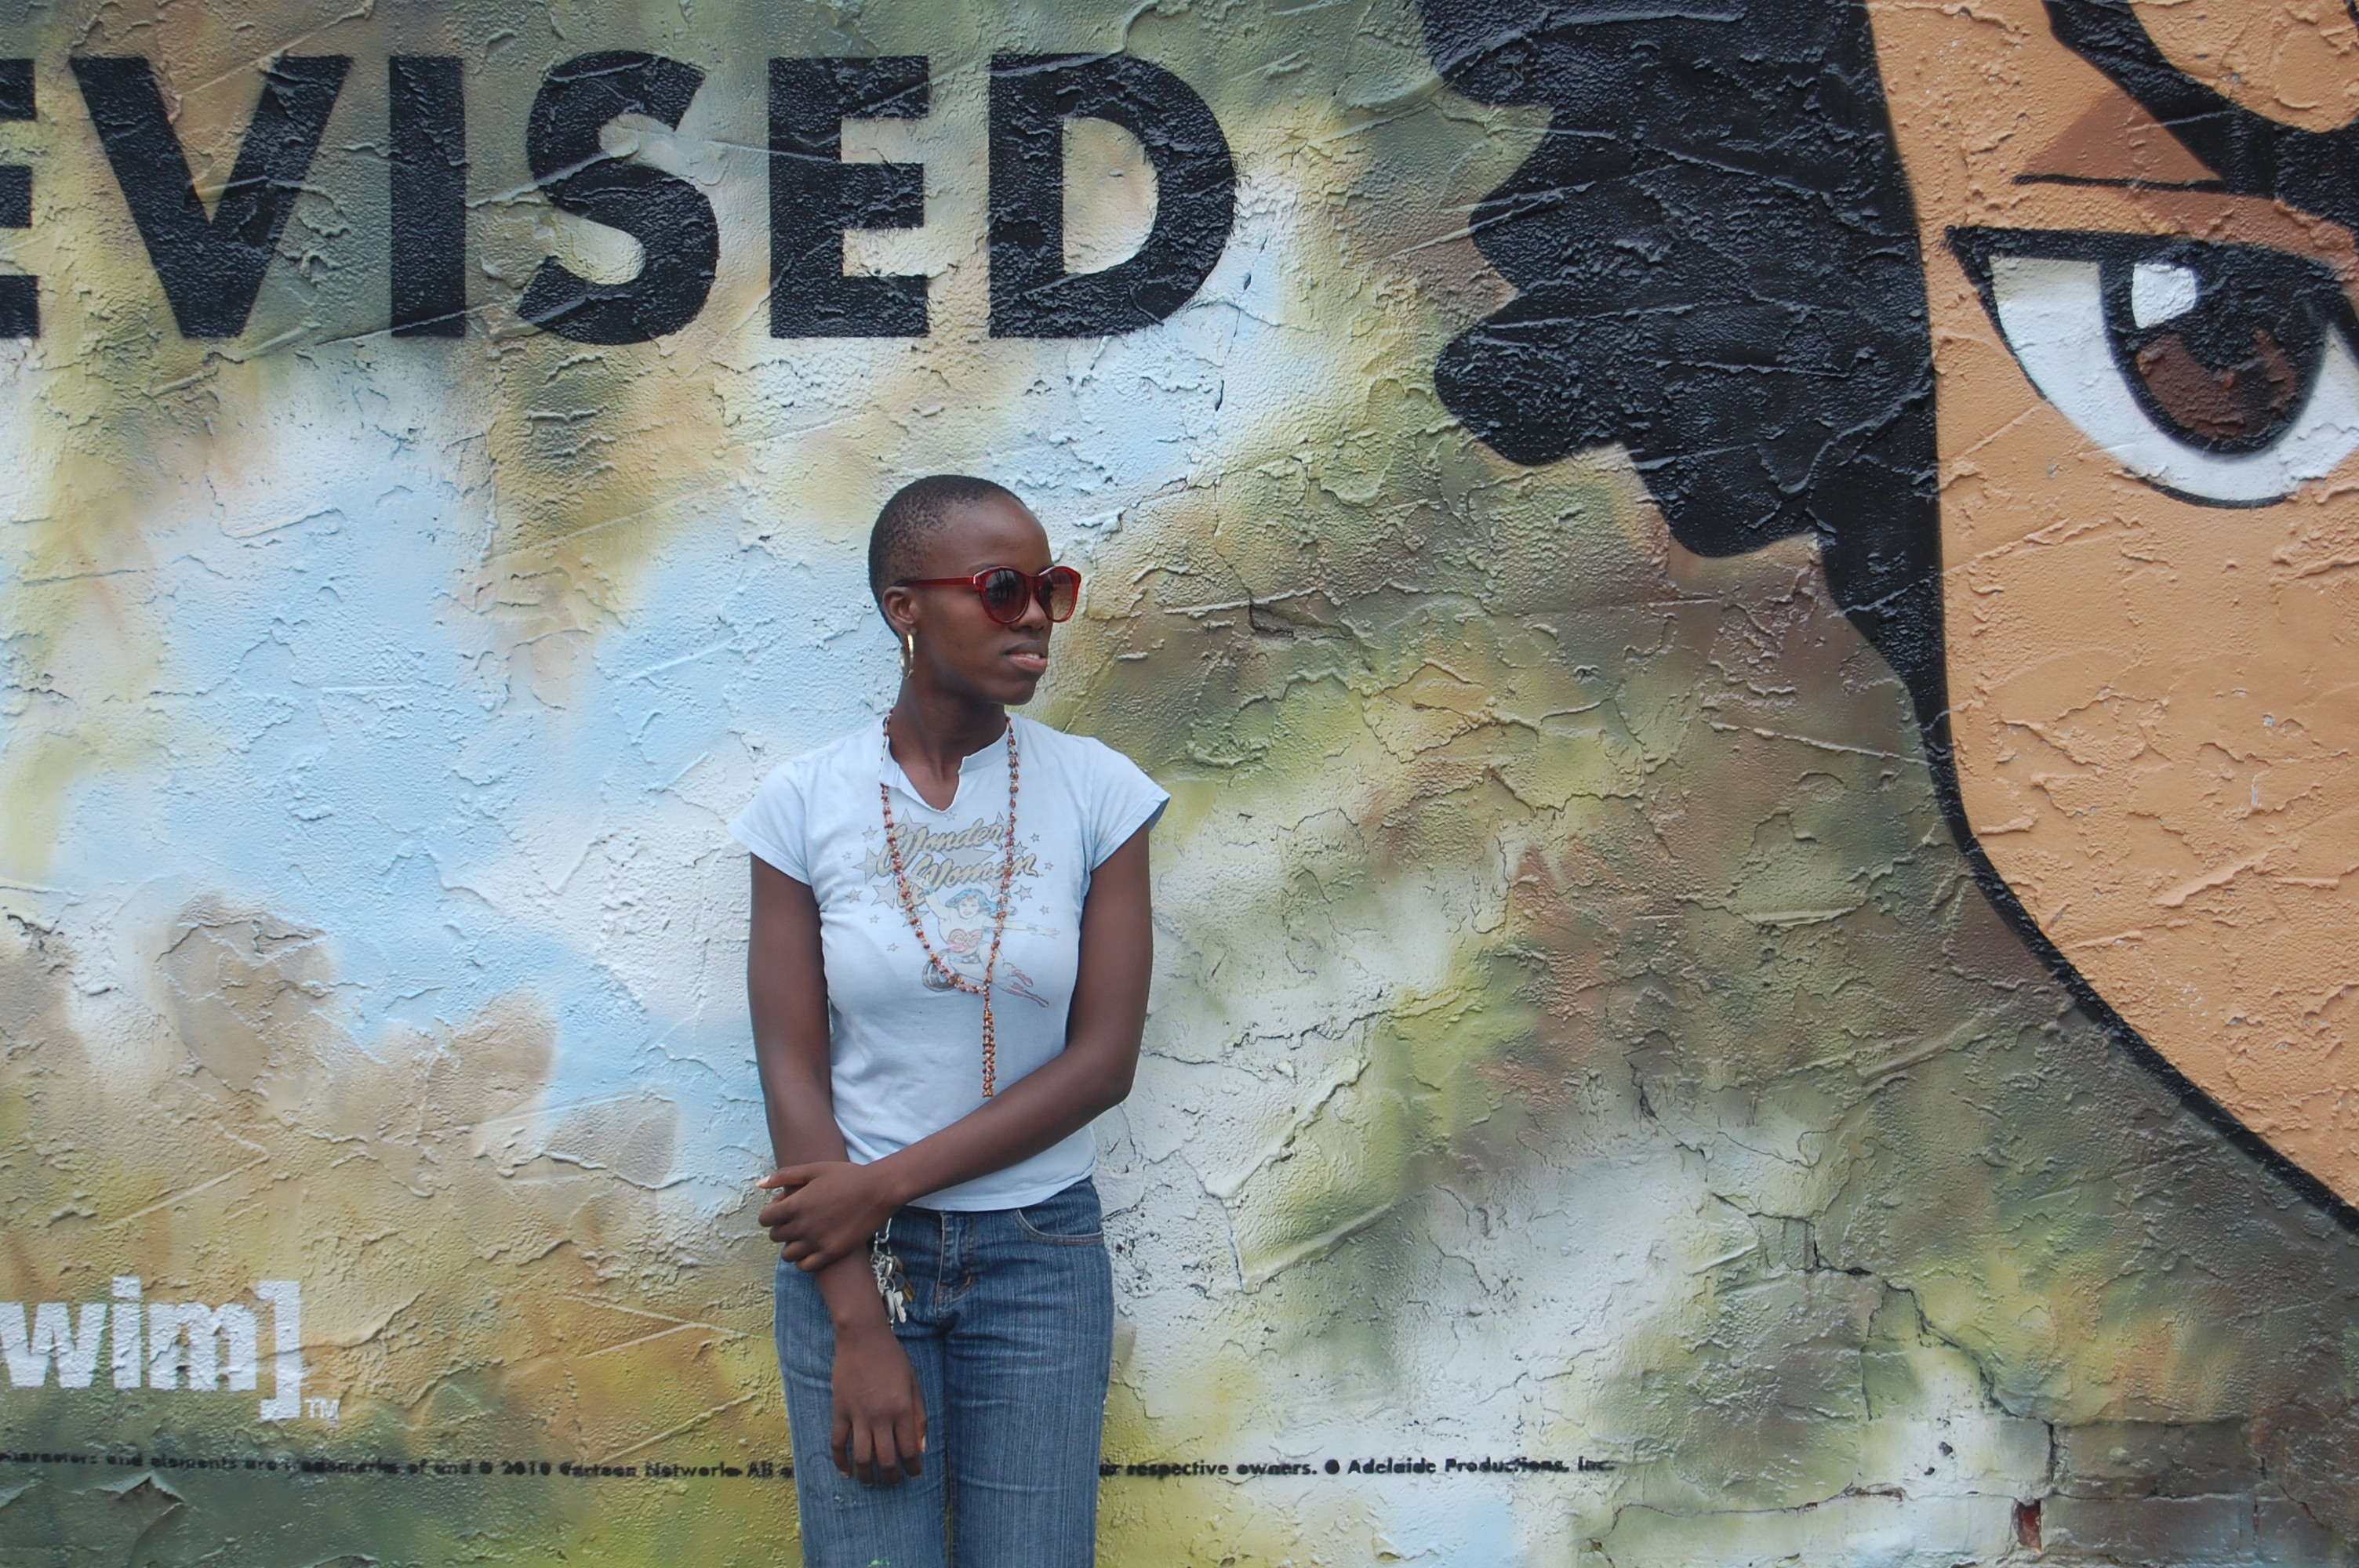 Dark skinned black girl in front of Ad for the Boondocks TV show with Huey's Eye in the frame.